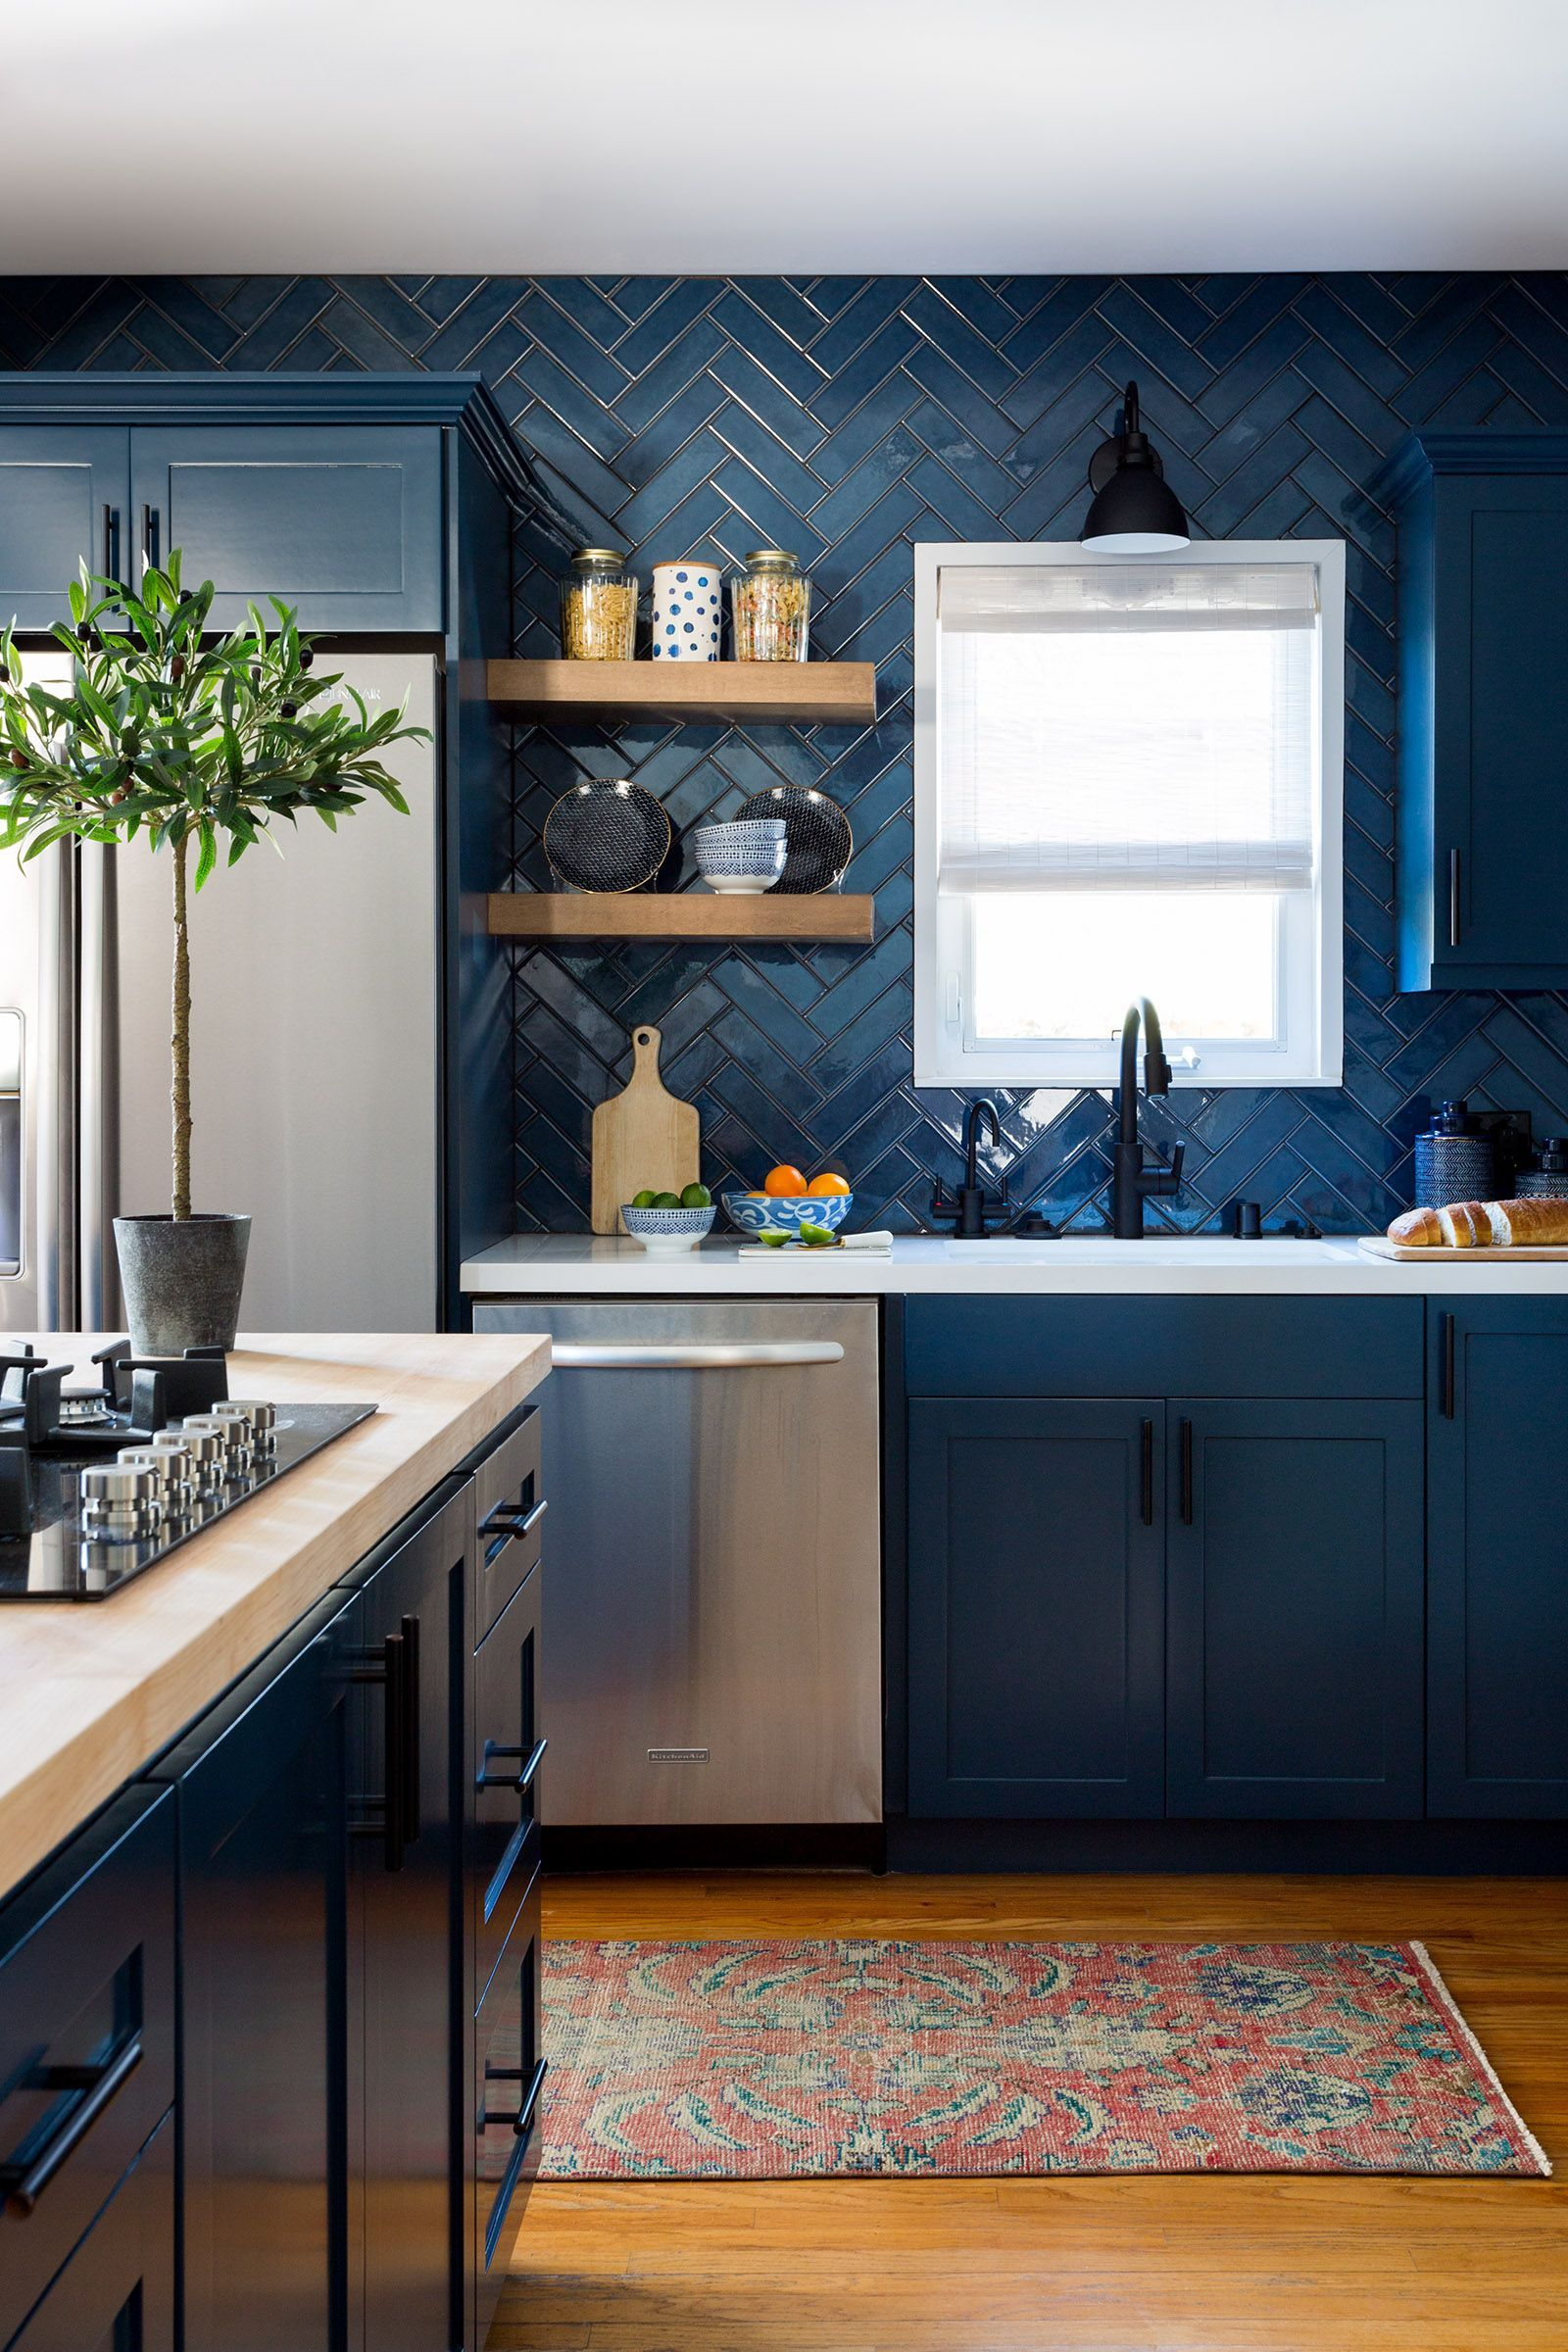 Dark Blue Kitchen Cabinets With Blue Tile Backsplash Jenn